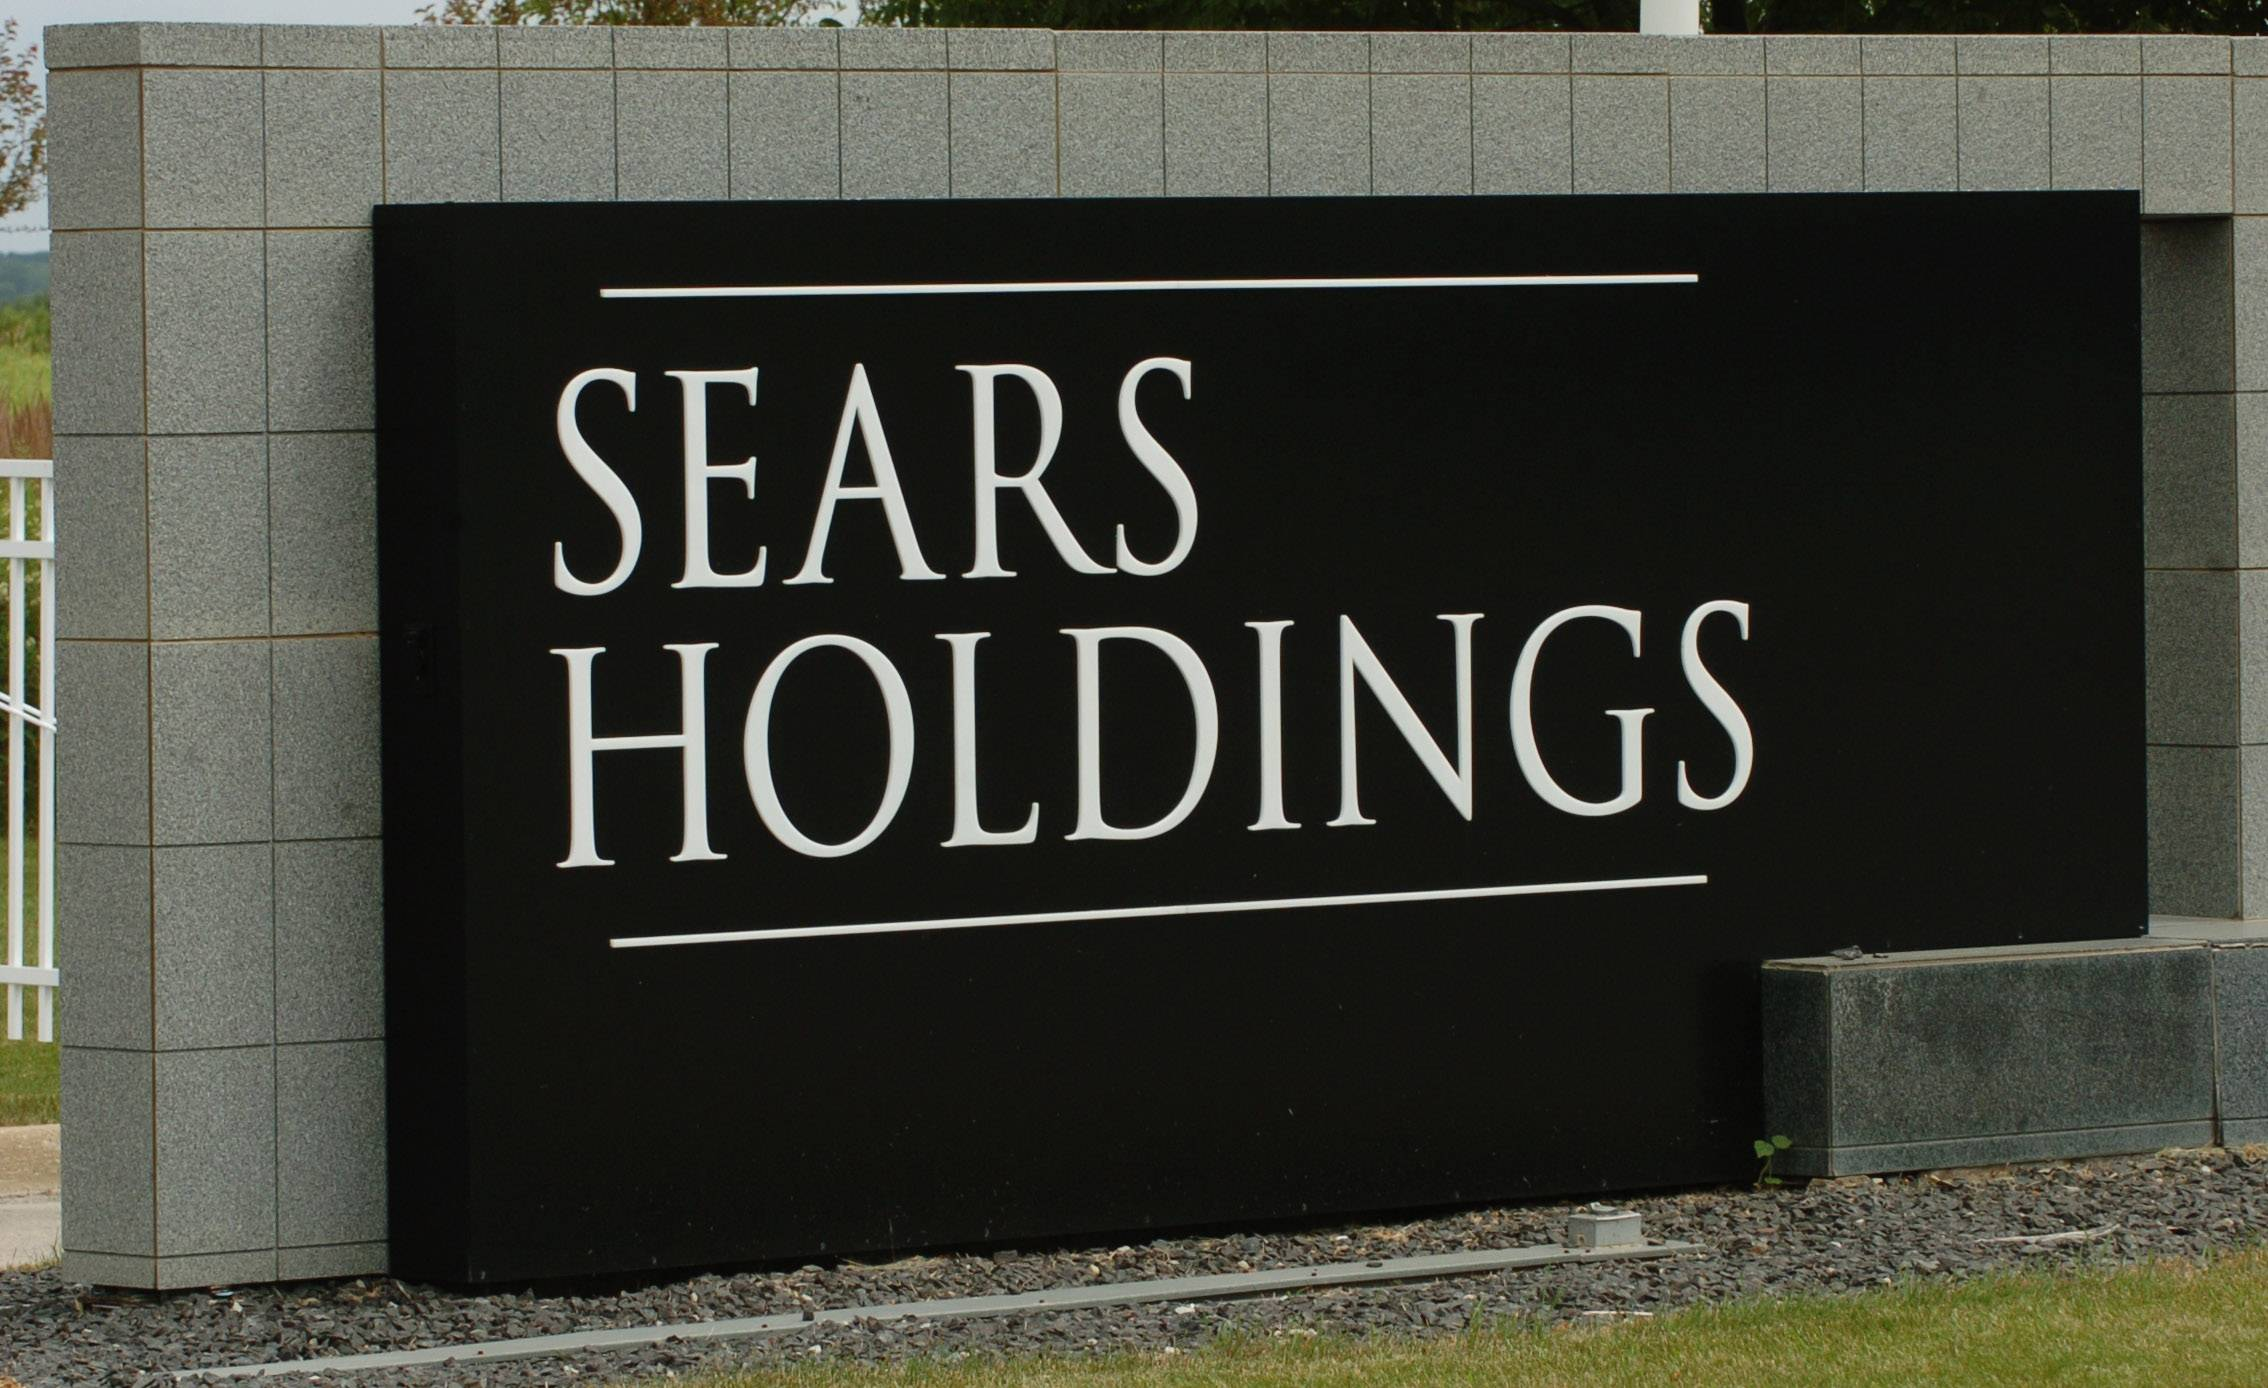 Report: Sears Holdings eyes move to Wasghinton D.C.